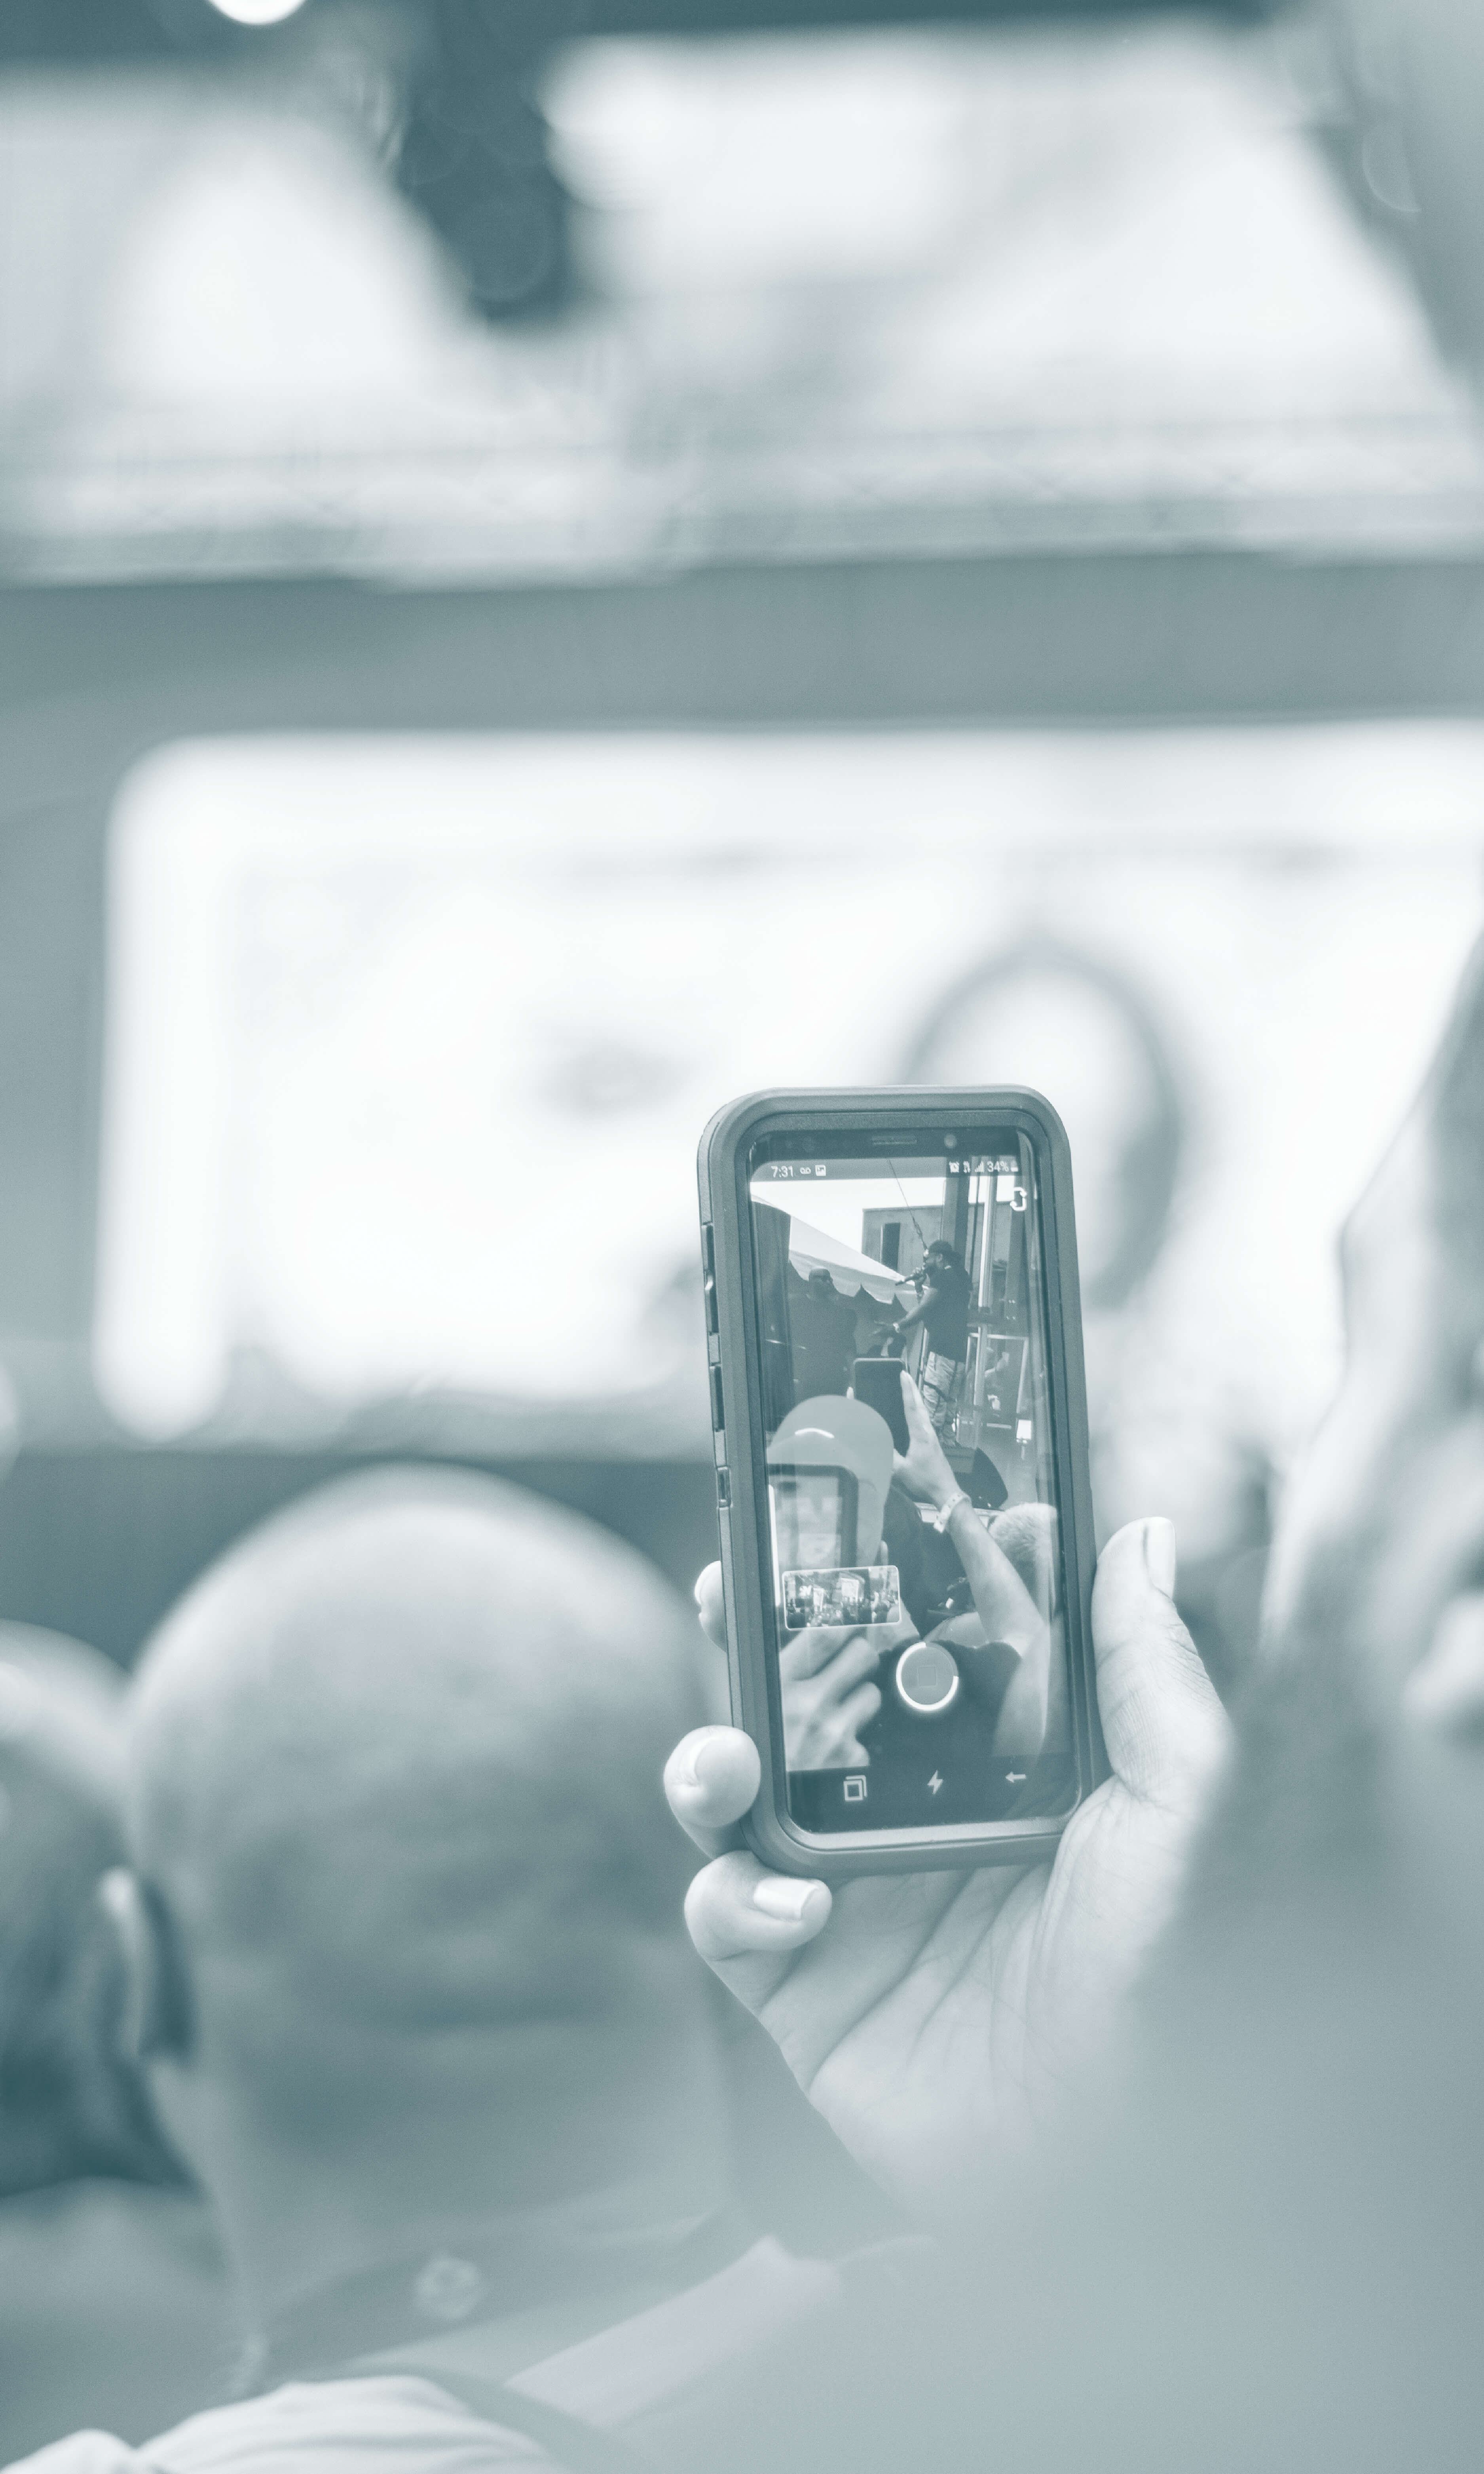 Do You Think Cellphones Ruin the Concert Viewing Experience? image